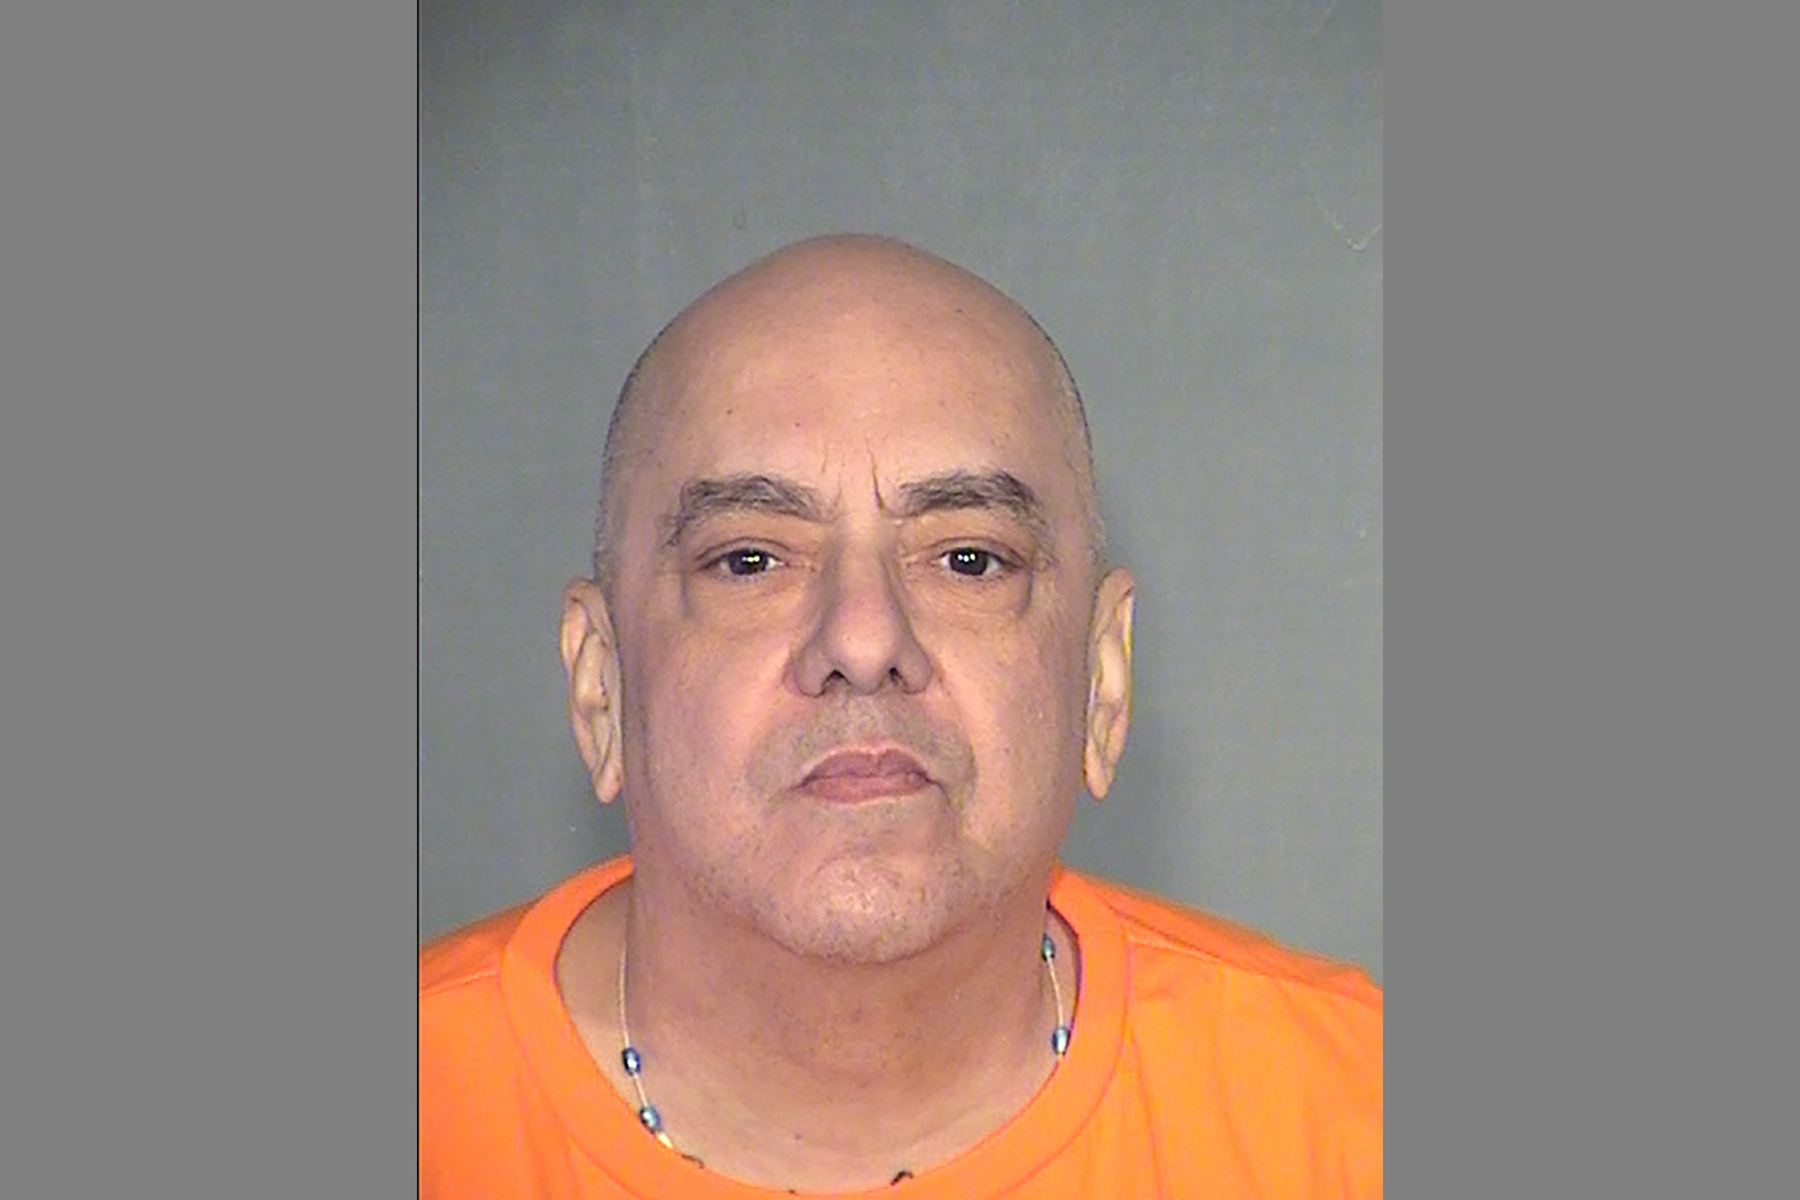 This undated mugshot released by the Arizona Department of Corrections shows Frank Roque. Roque who was convicted of first-degree murder in the Sept. 15, 2001 shooting of Balbir Singh Sodhi, a Sikh Indian immigrant in the aftermath of the 9/11 terror attacks. The victim's brother Rana Singh Sodhi called Roque in prison three years ago to forgive him for killing his older brother. (Arizona Department of Corrections via AP)